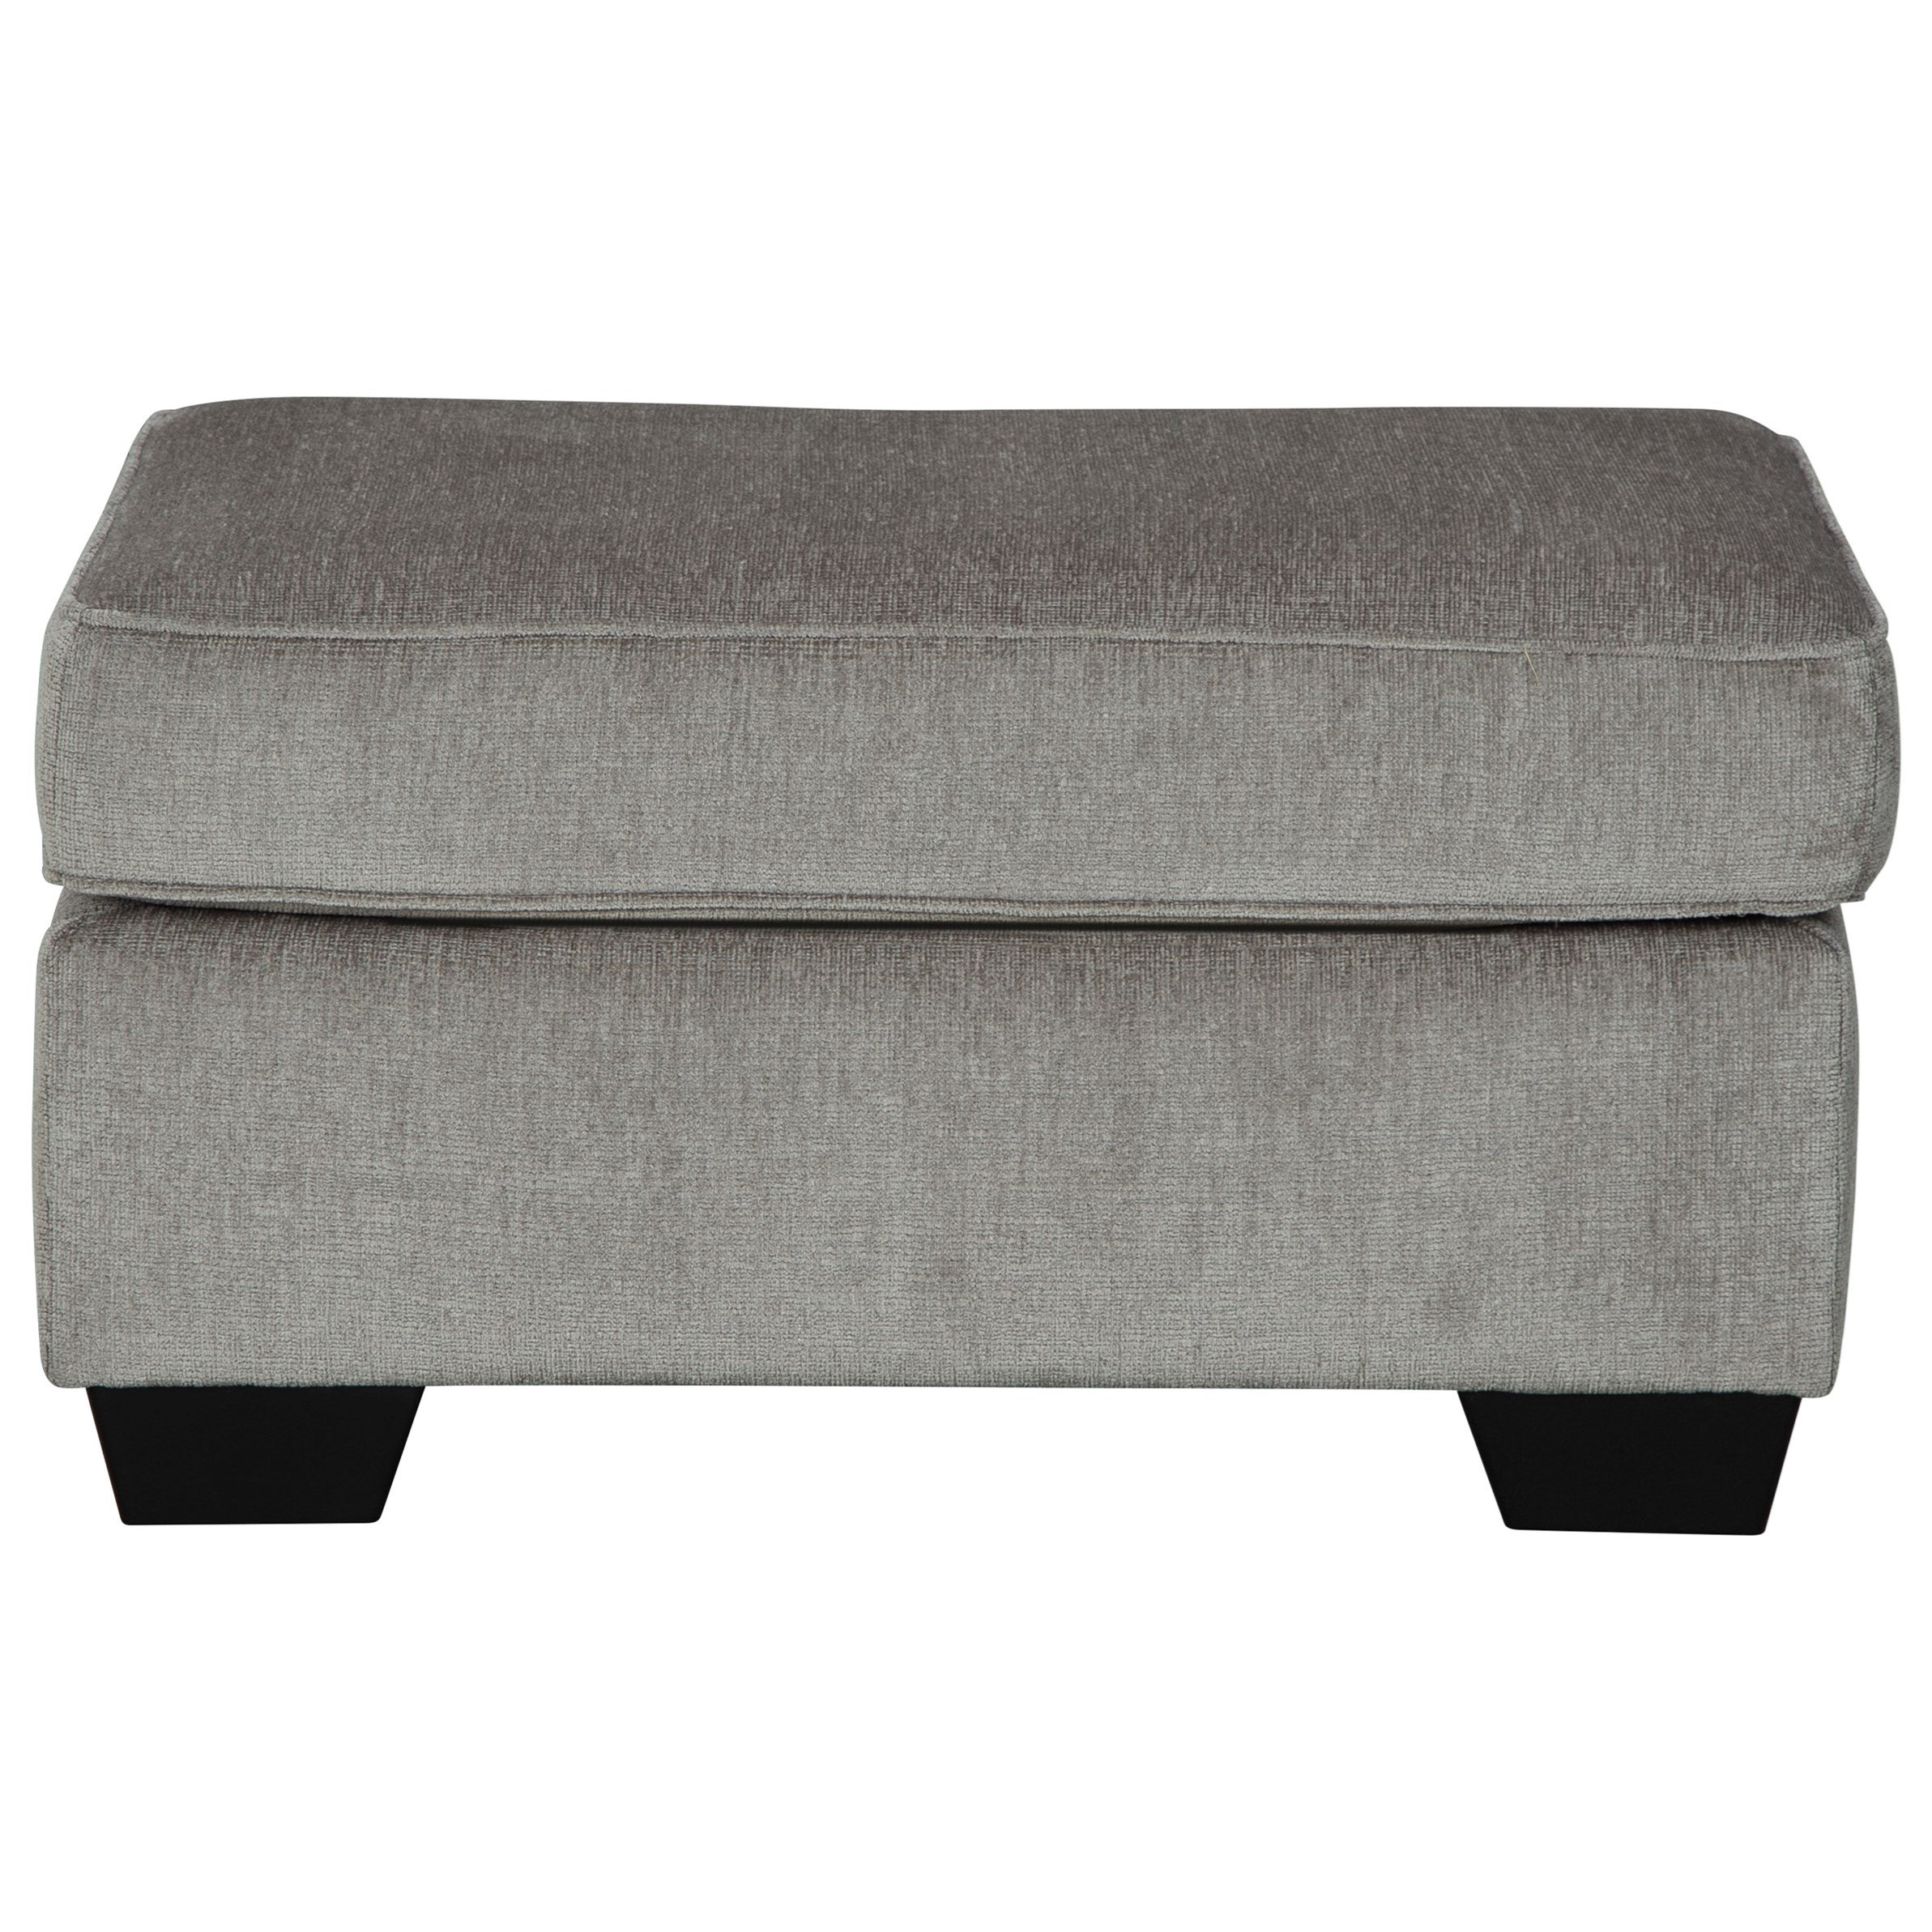 Altari Ottoman by Signature Design by Ashley at Beck's Furniture